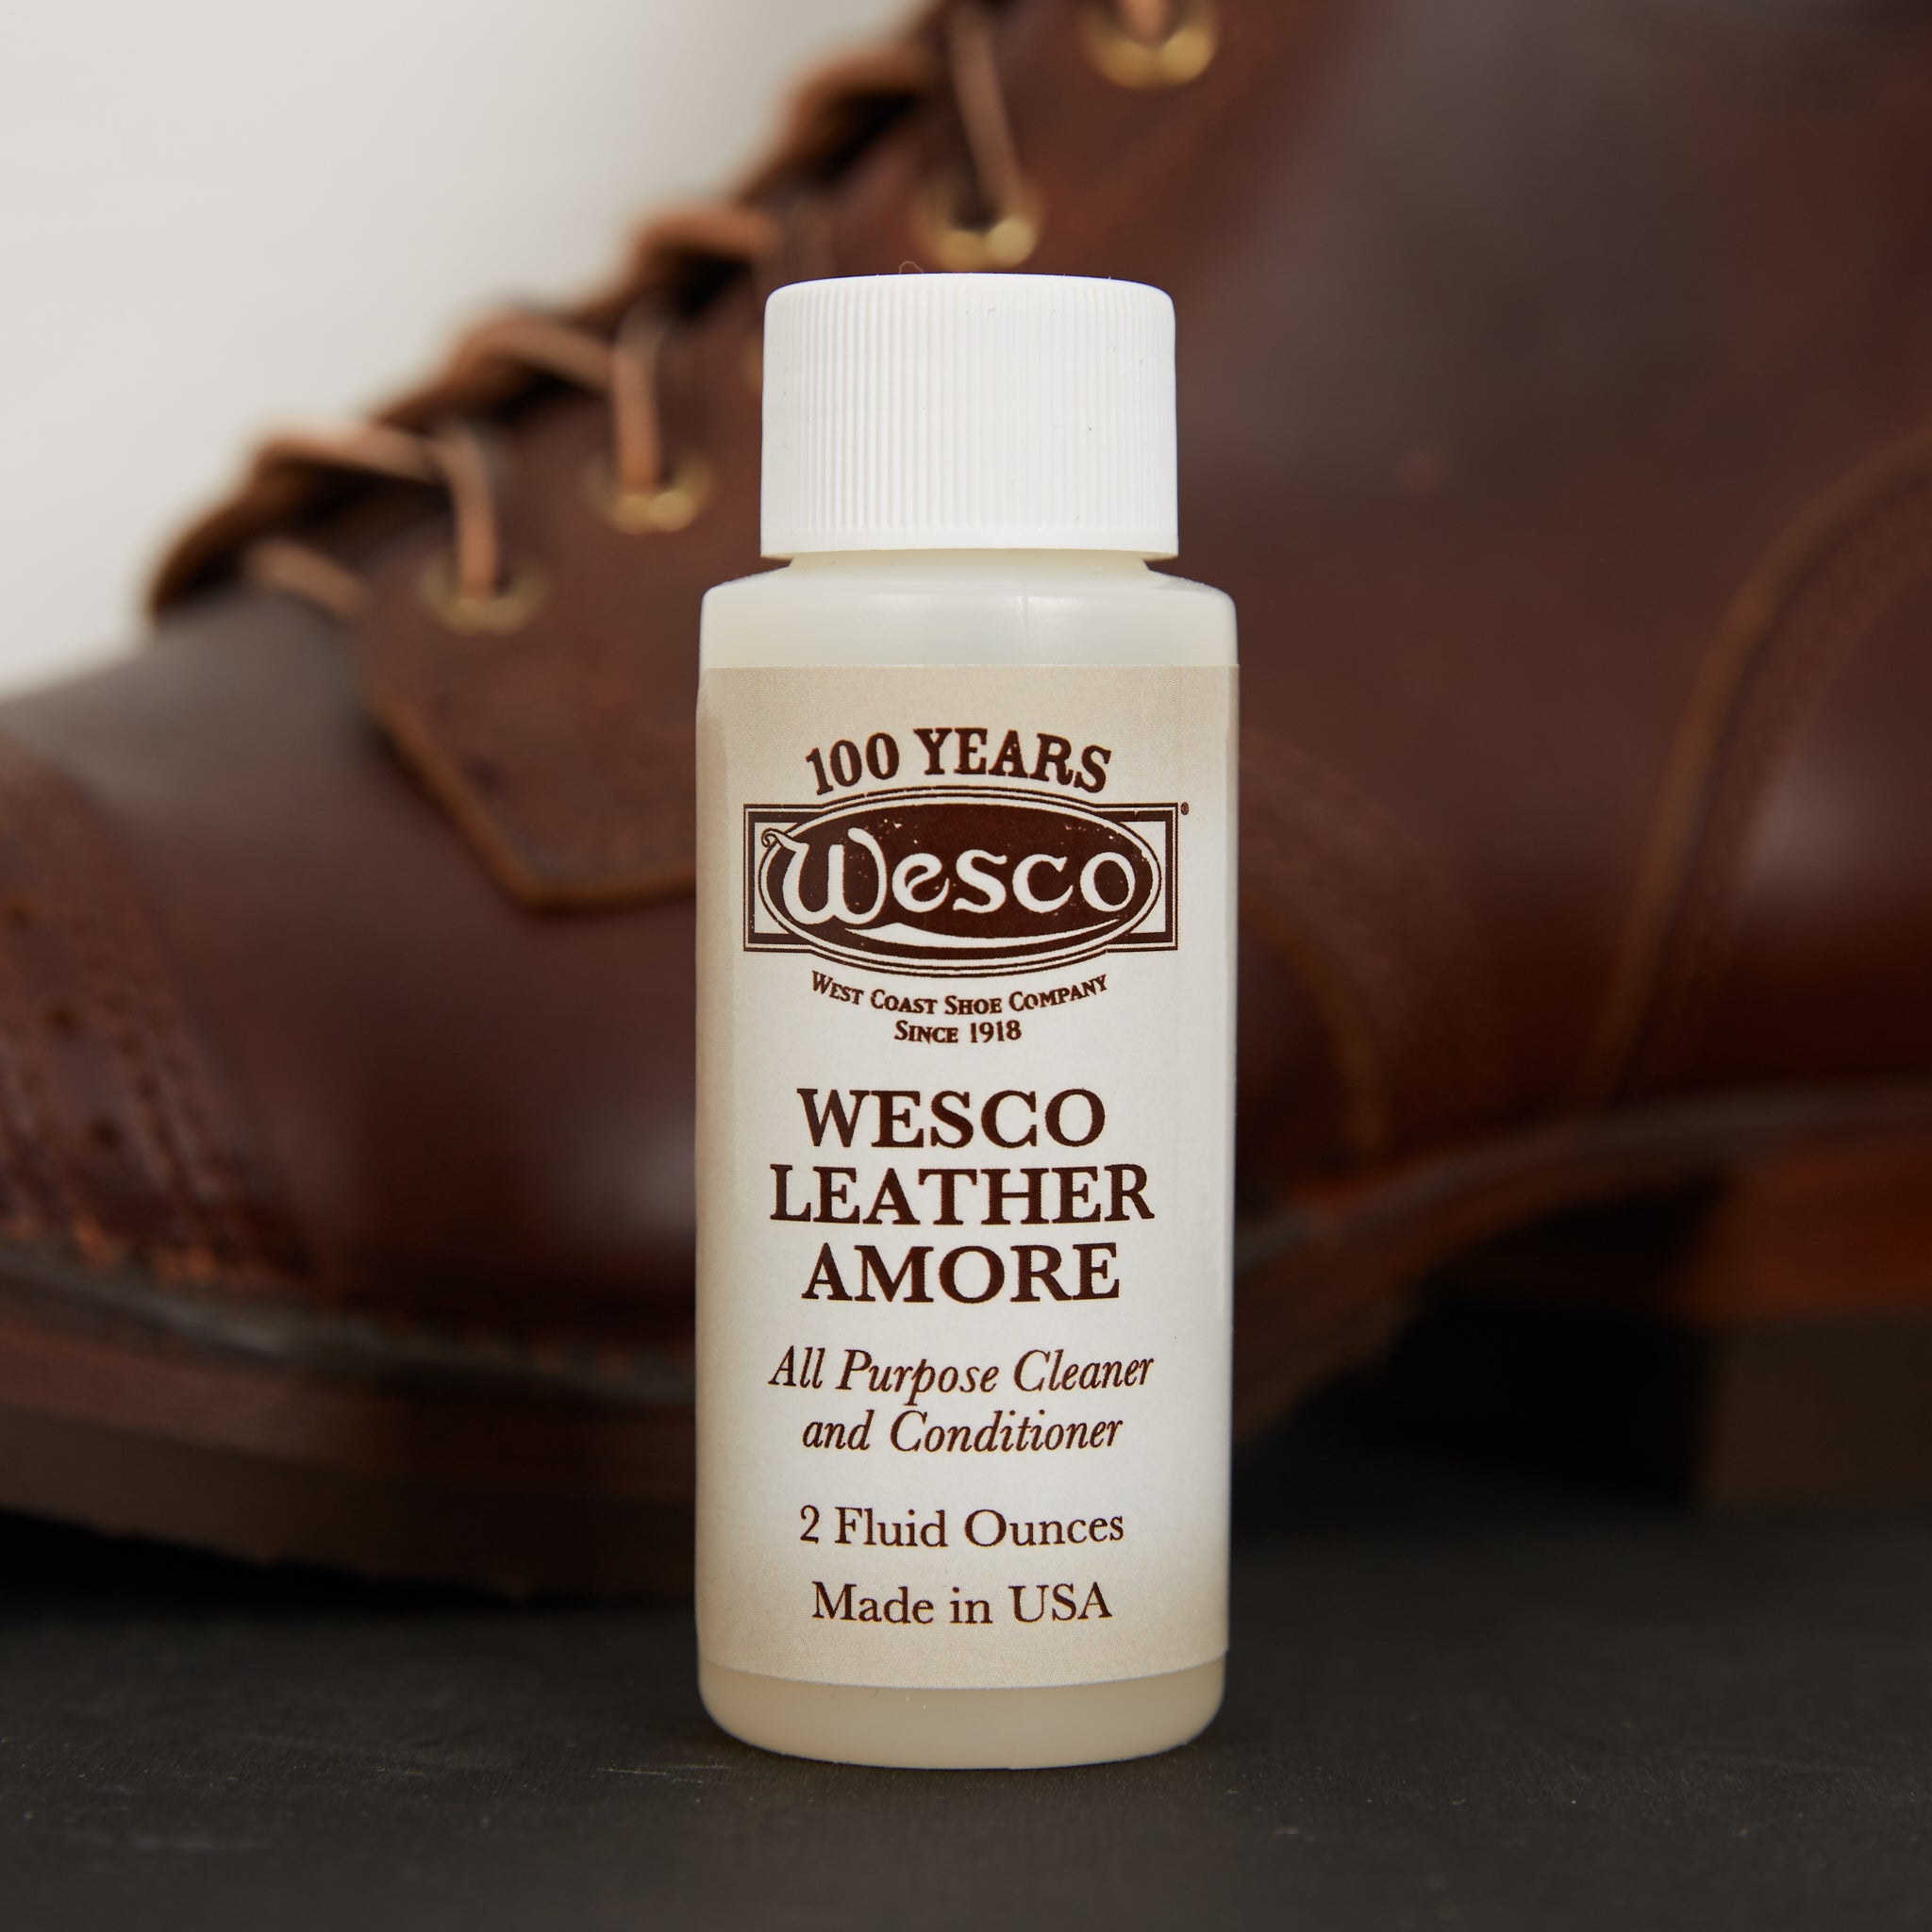 Wesco Leather Boot Dressing Leather Amore